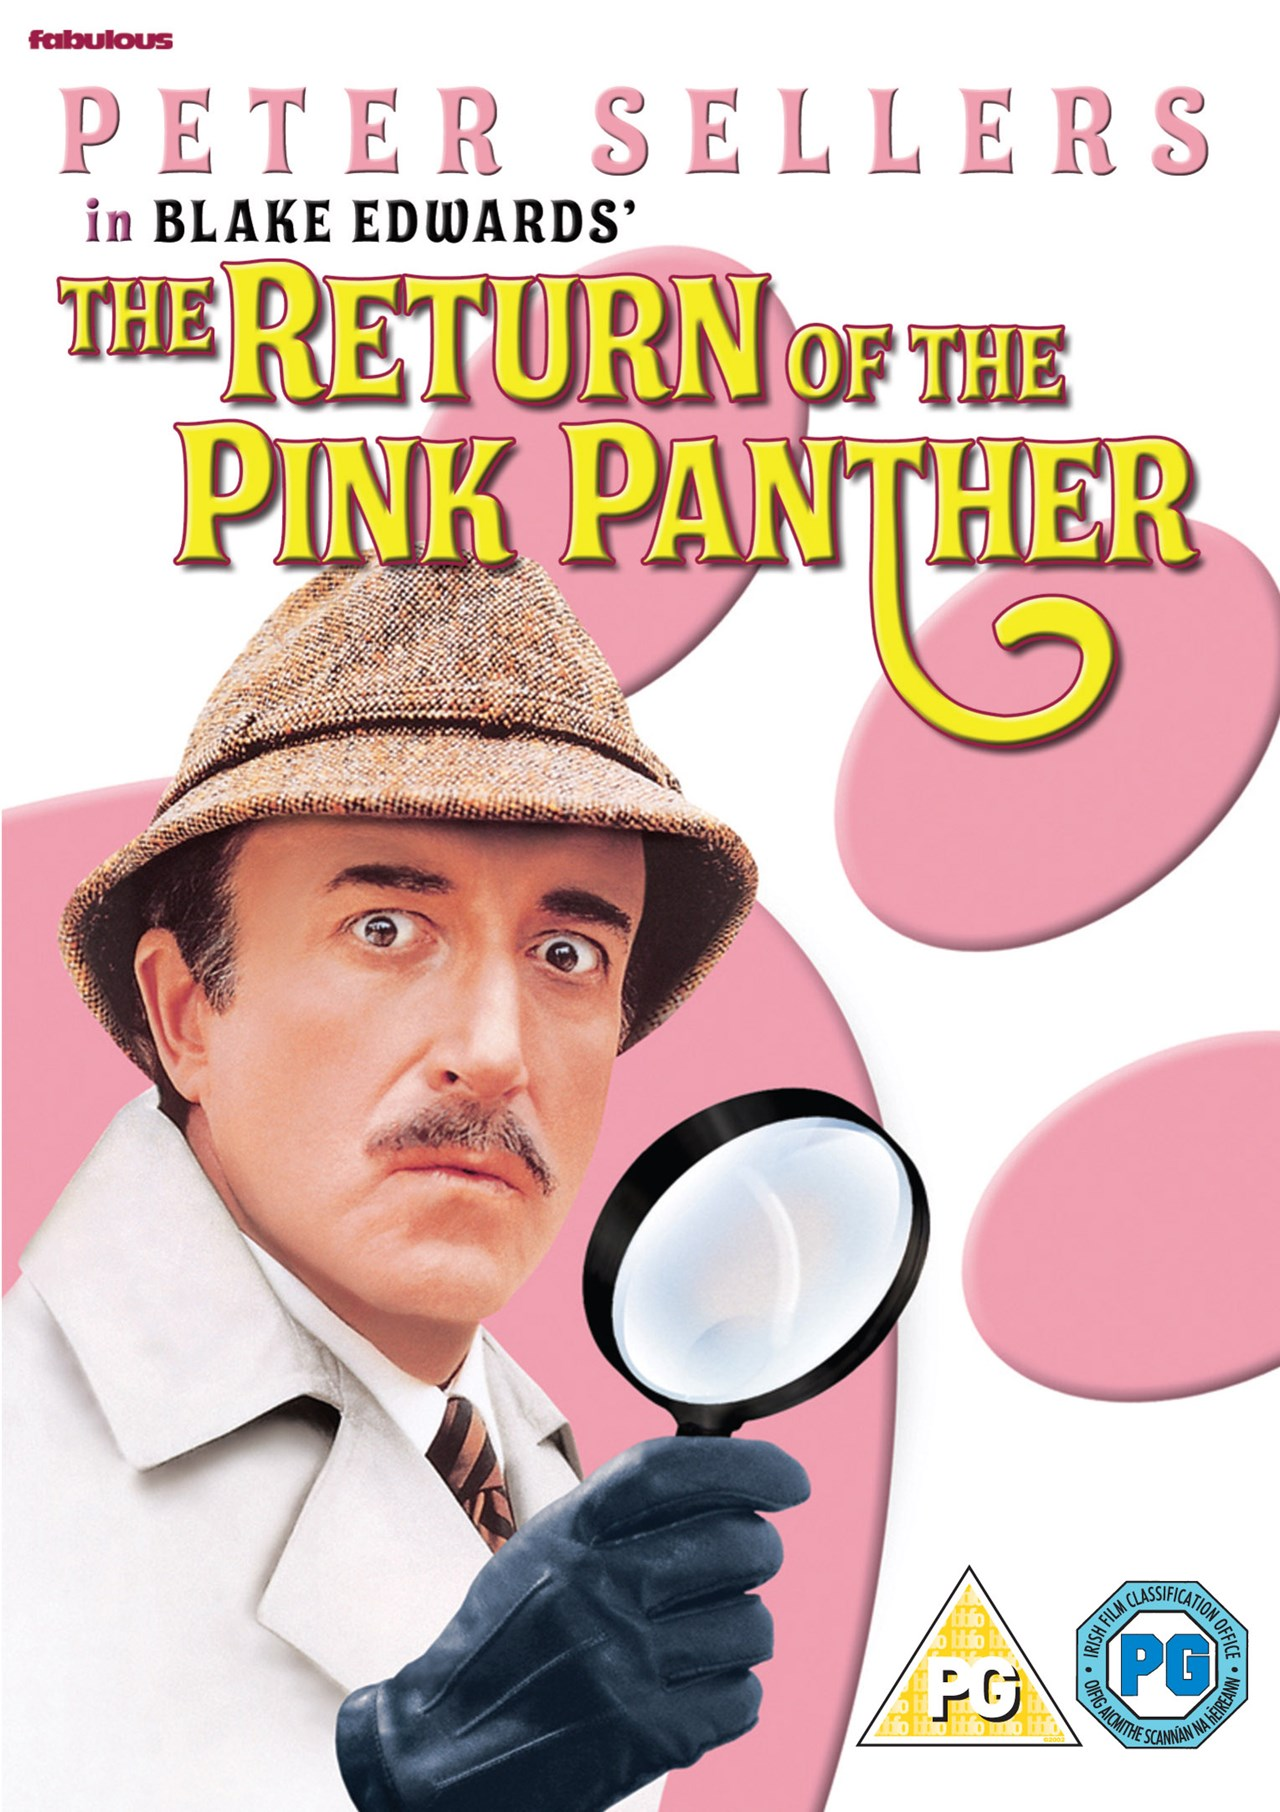 The Return of the Pink Panther - 1